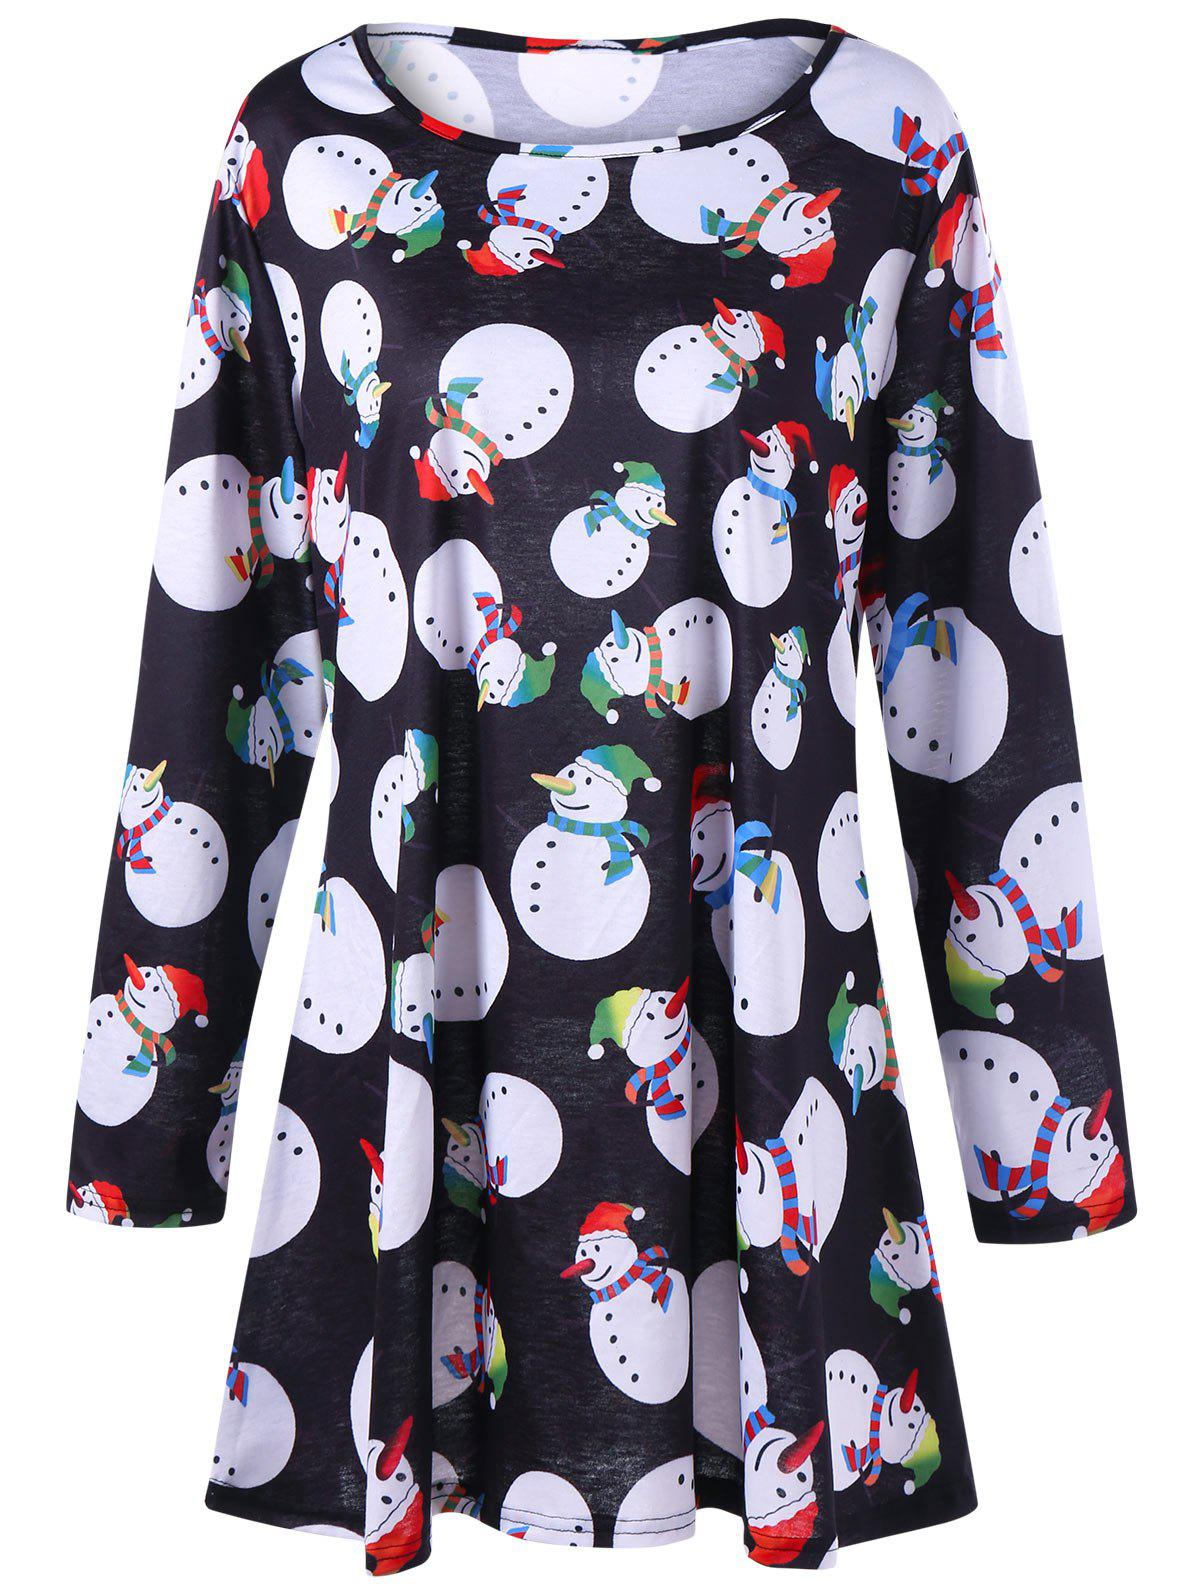 Plus Size Snowman Christmas Tee DressWOMEN<br><br>Size: XL; Color: BLACK; Style: Casual; Material: Polyester,Spandex; Silhouette: A-Line; Dresses Length: Mini; Neckline: Round Collar; Sleeve Length: Long Sleeves; Pattern Type: Others; With Belt: No; Season: Fall,Spring; Weight: 0.3000kg; Package Contents: 1 x Dress;